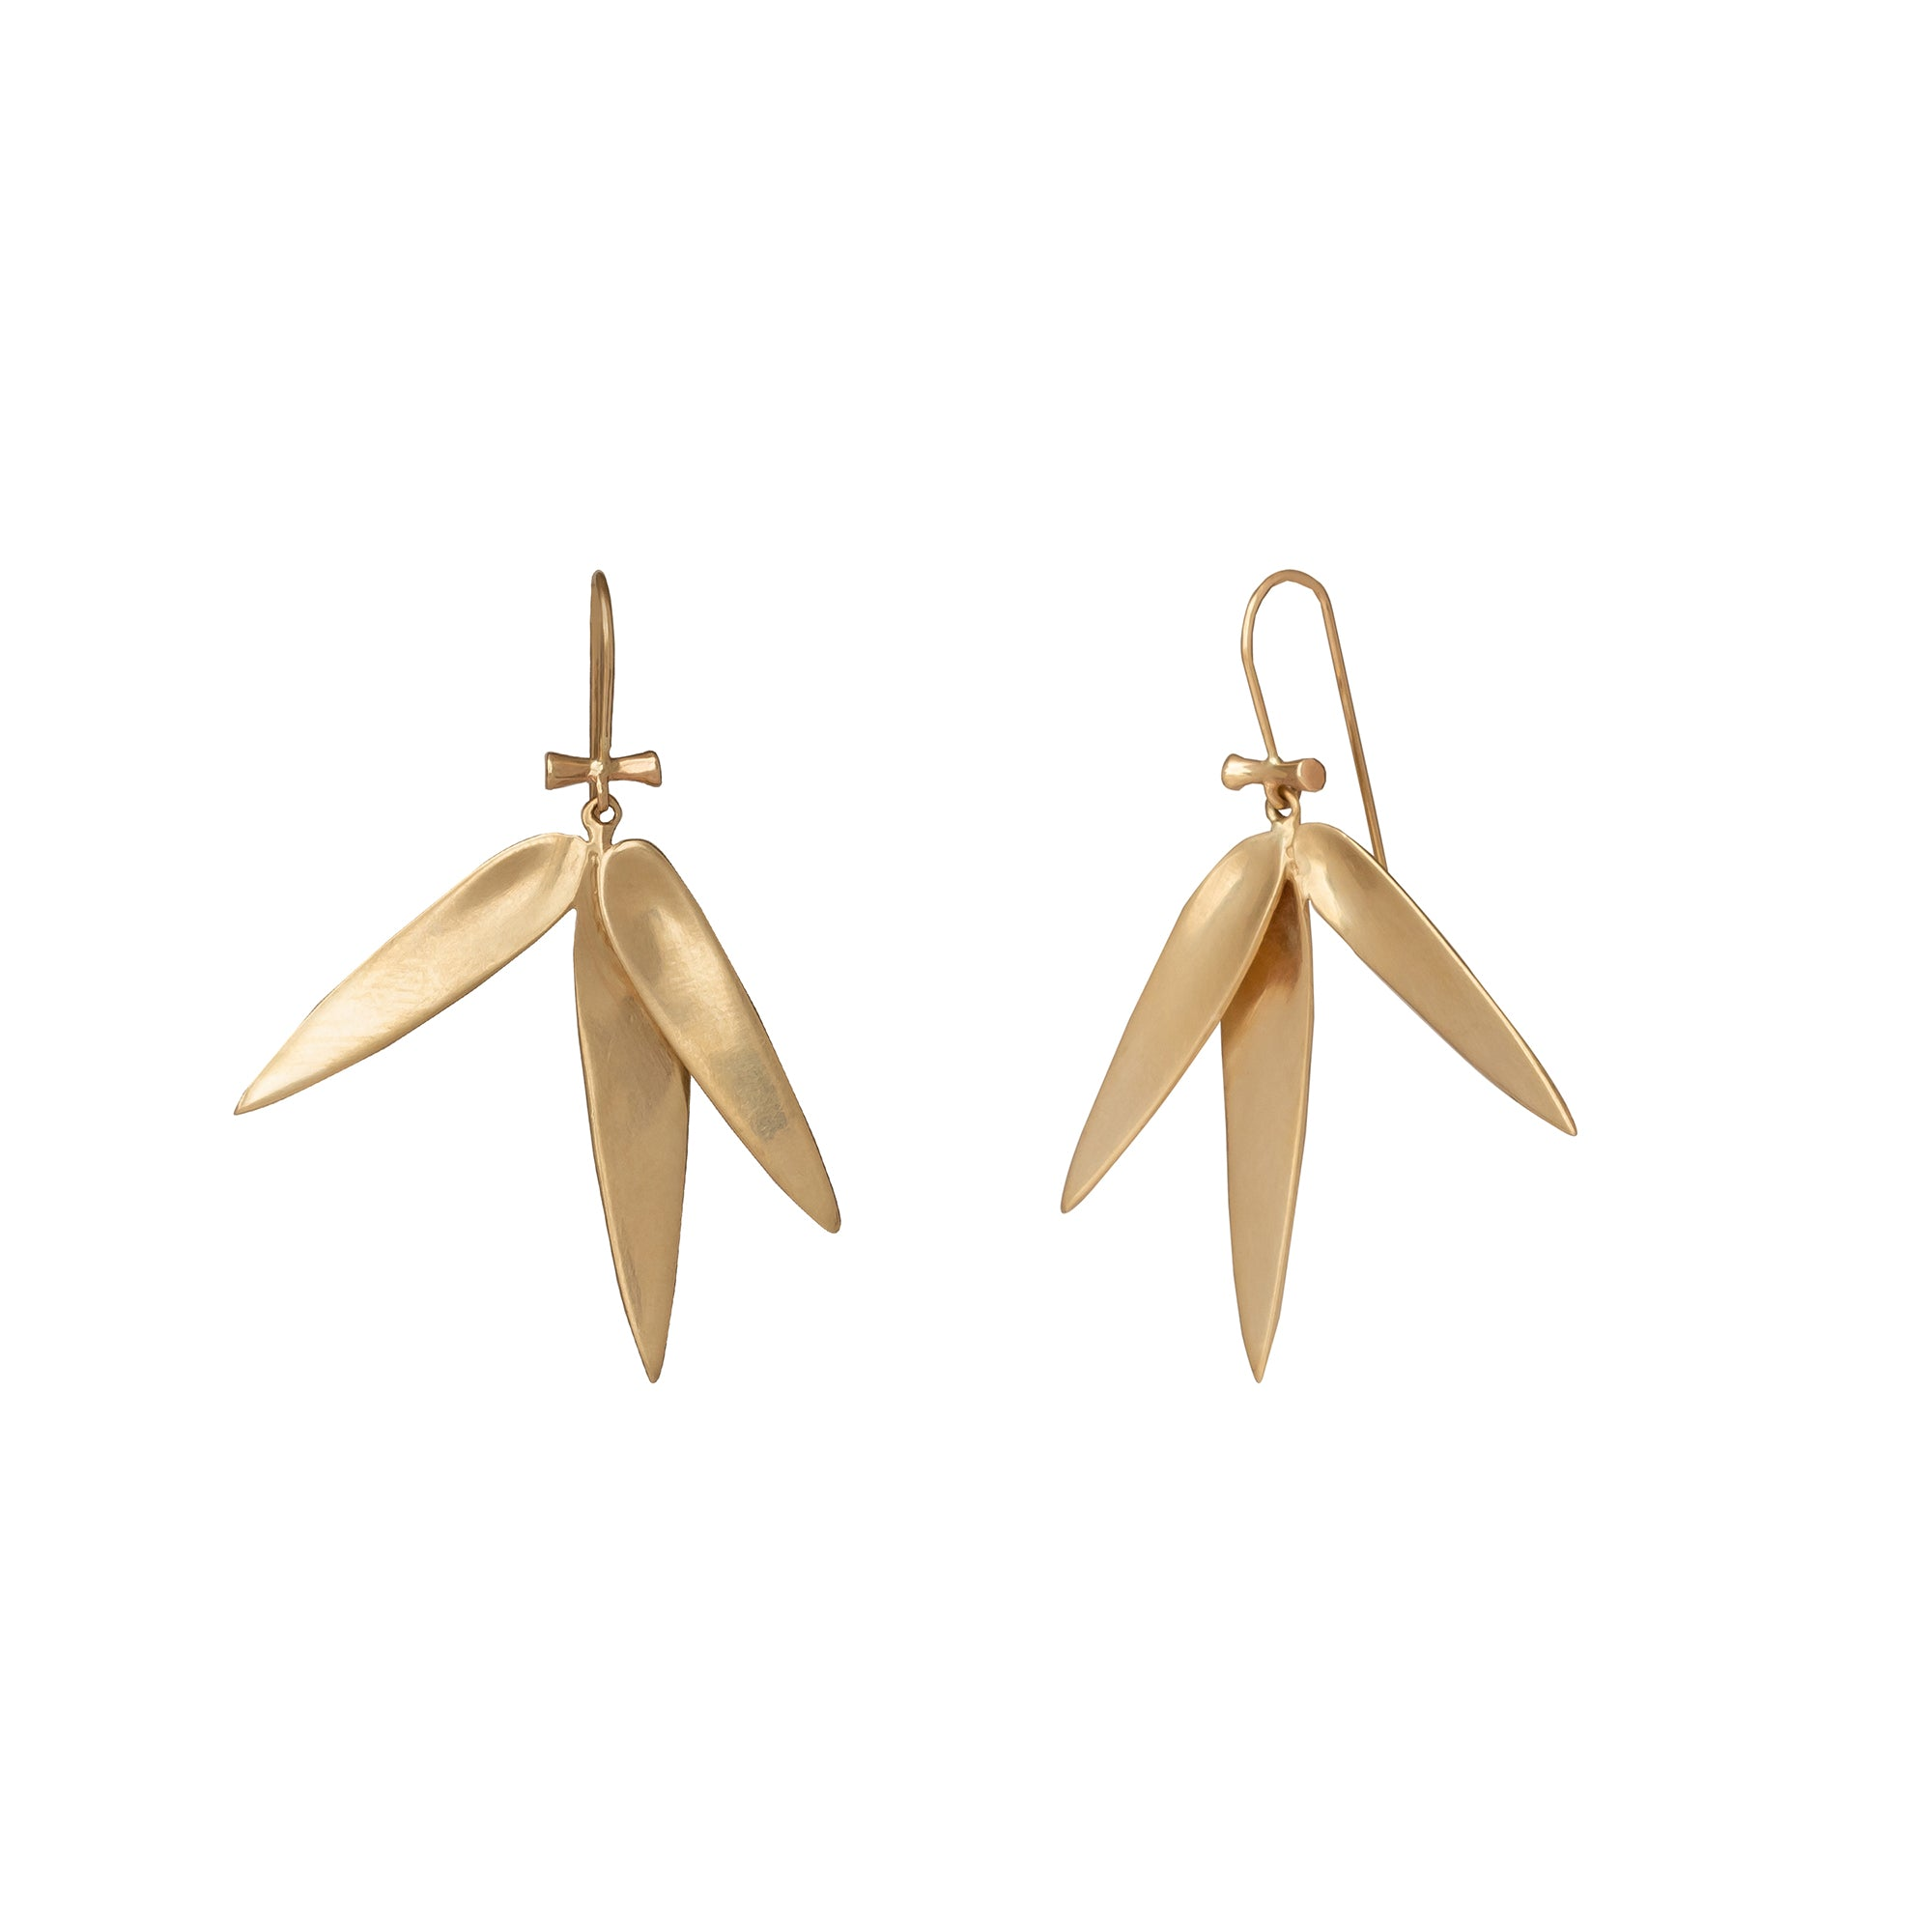 Medium Bamboo Earrings - Annette Ferdinansen - Earrings | Broken English Jewelry